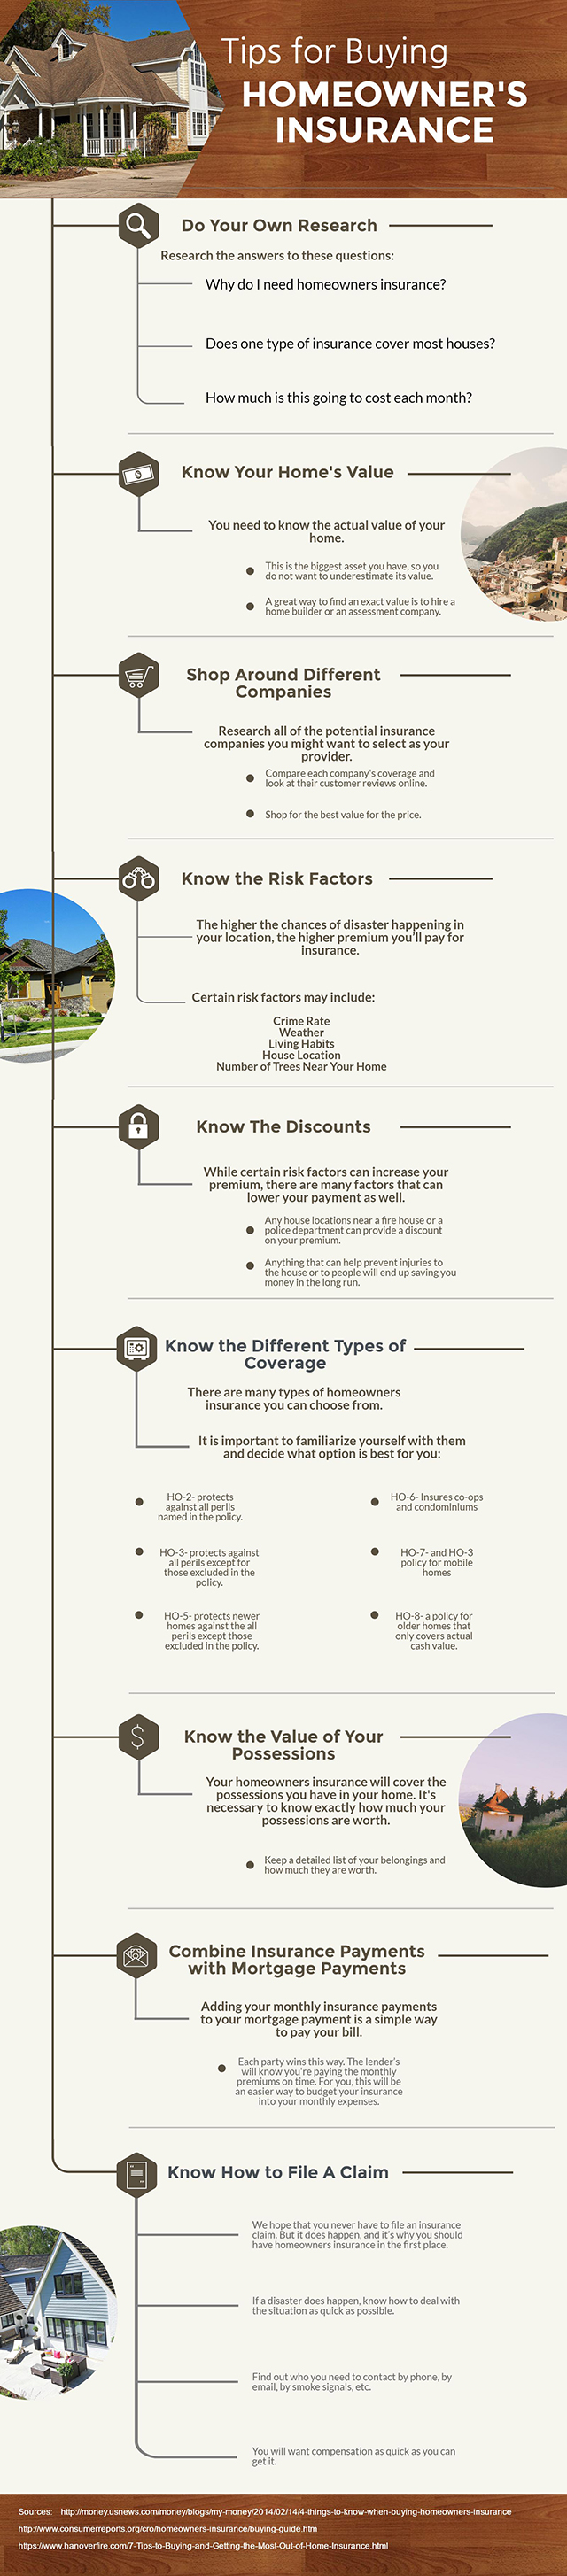 Tips For Buying Homeowners Insurance - Infographic